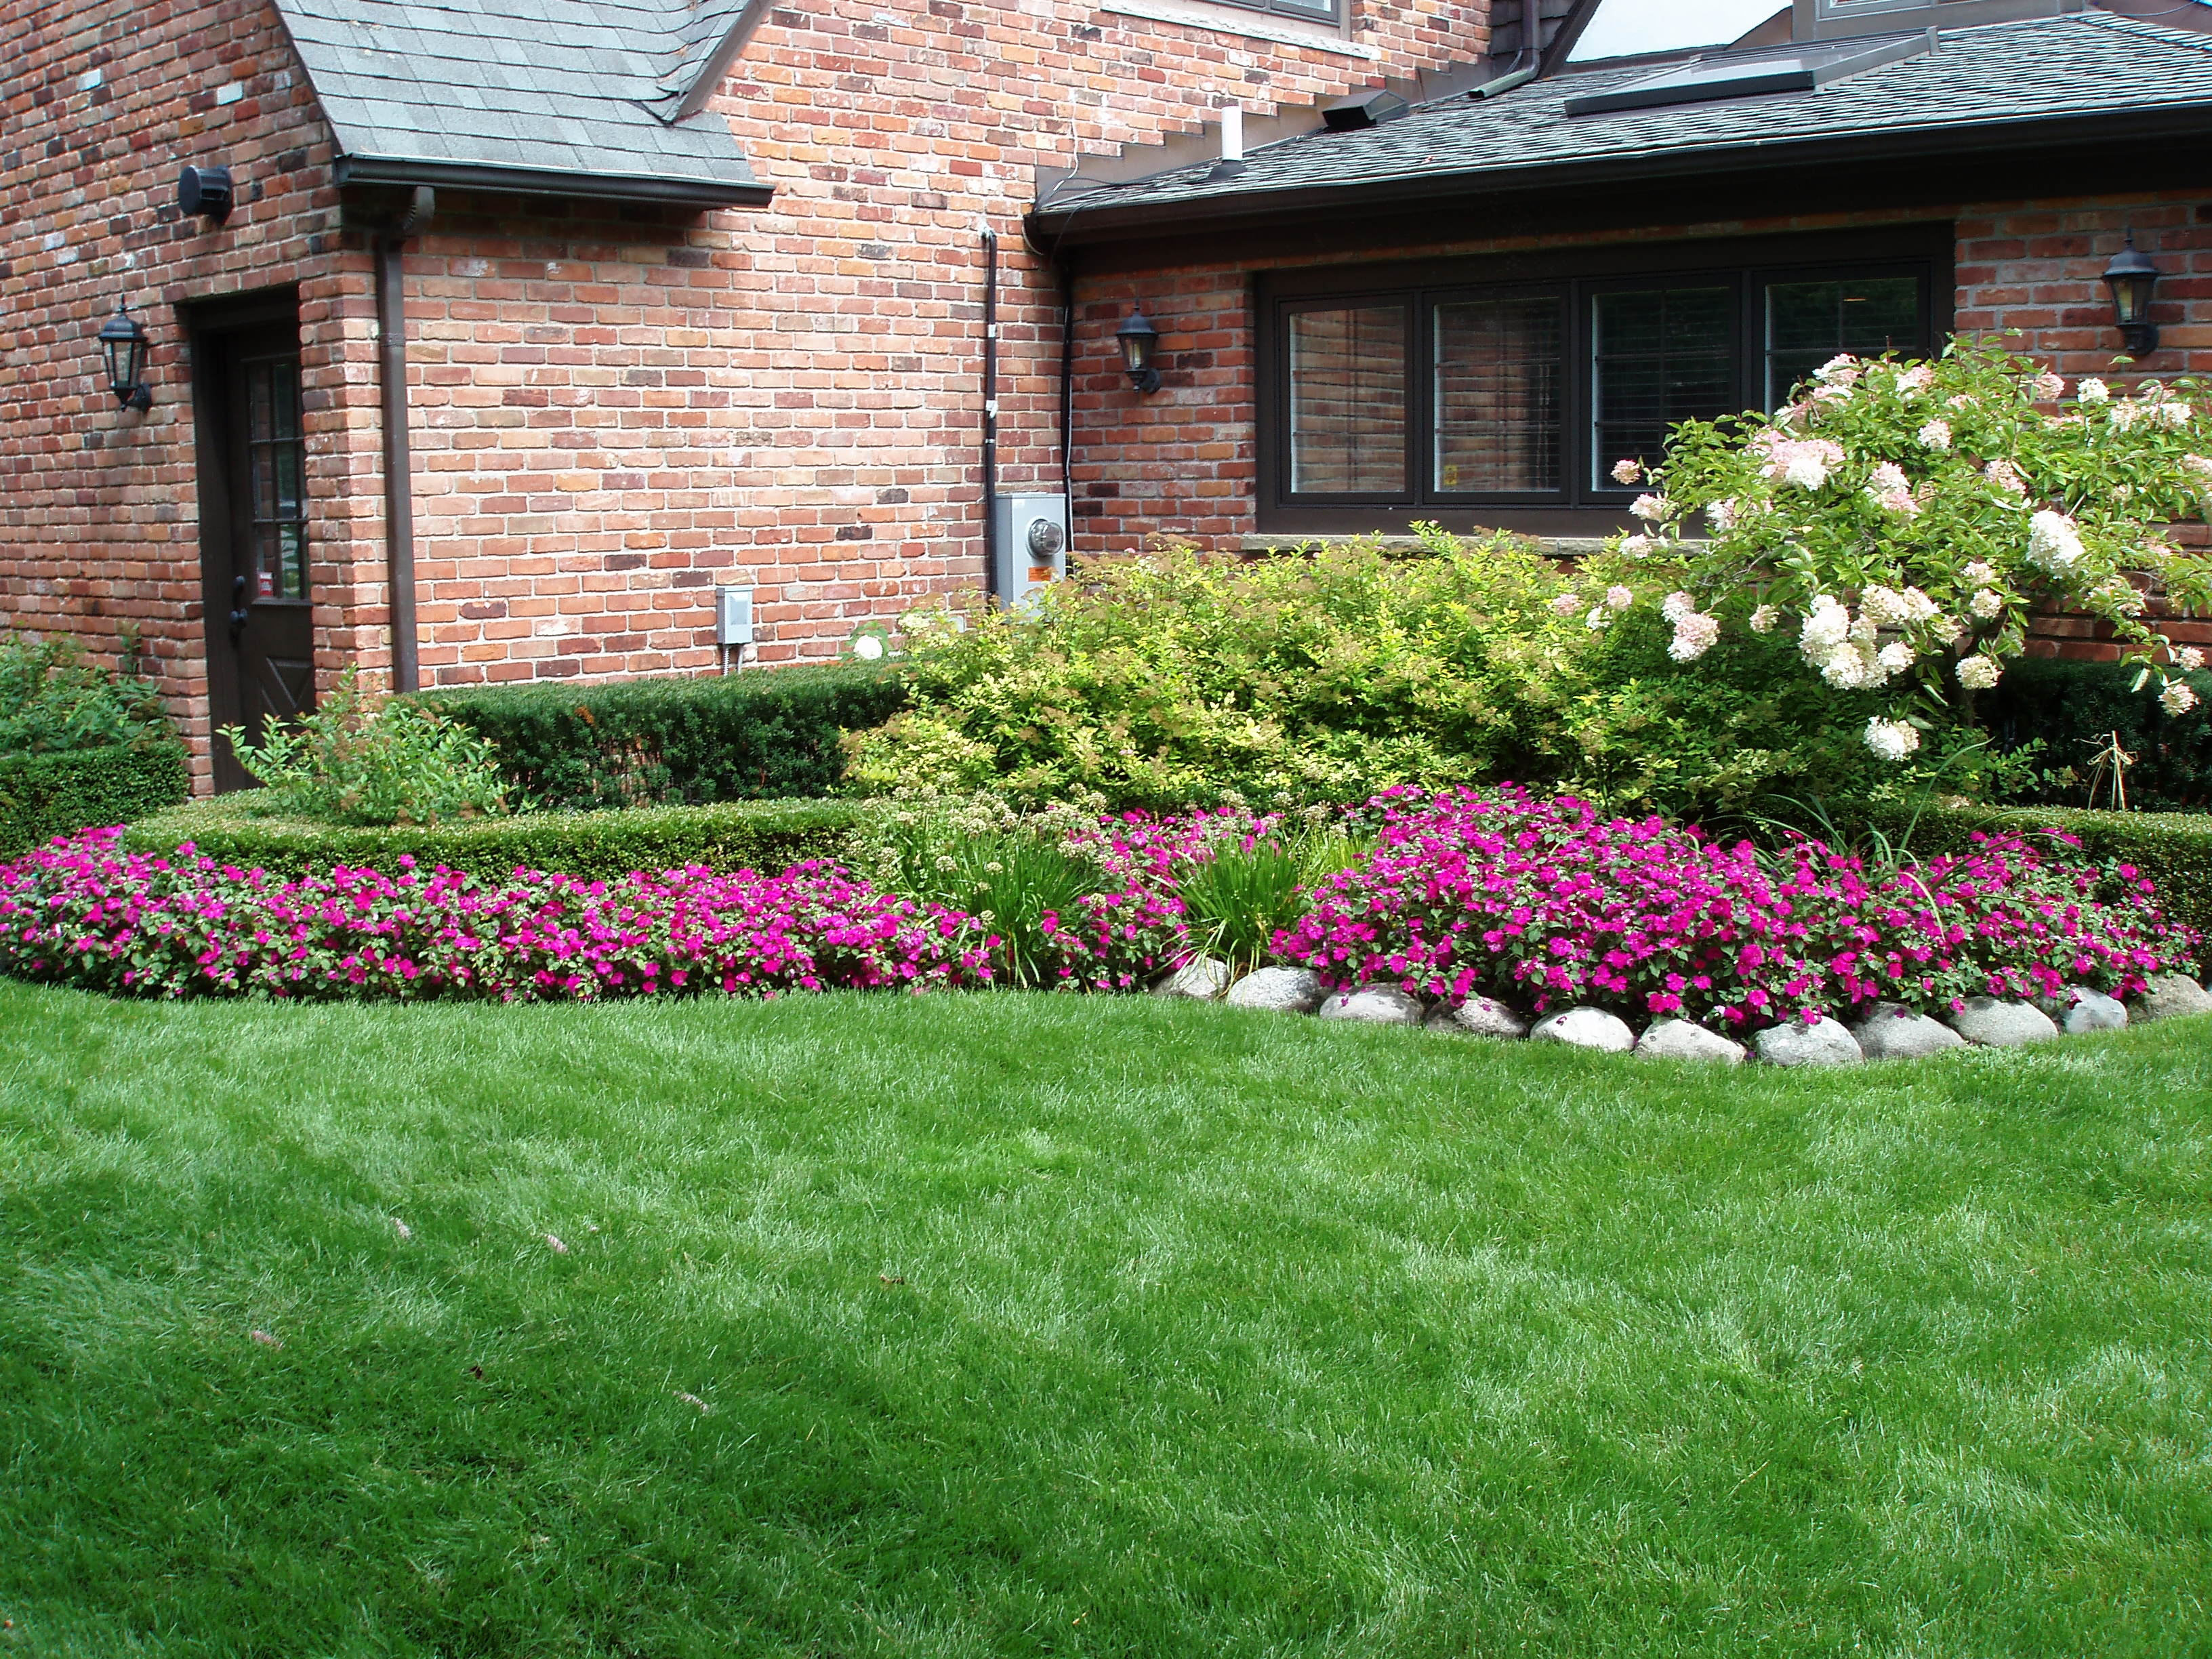 Perennials total lawn care inc full lawn maintenance for Small lawn garden ideas